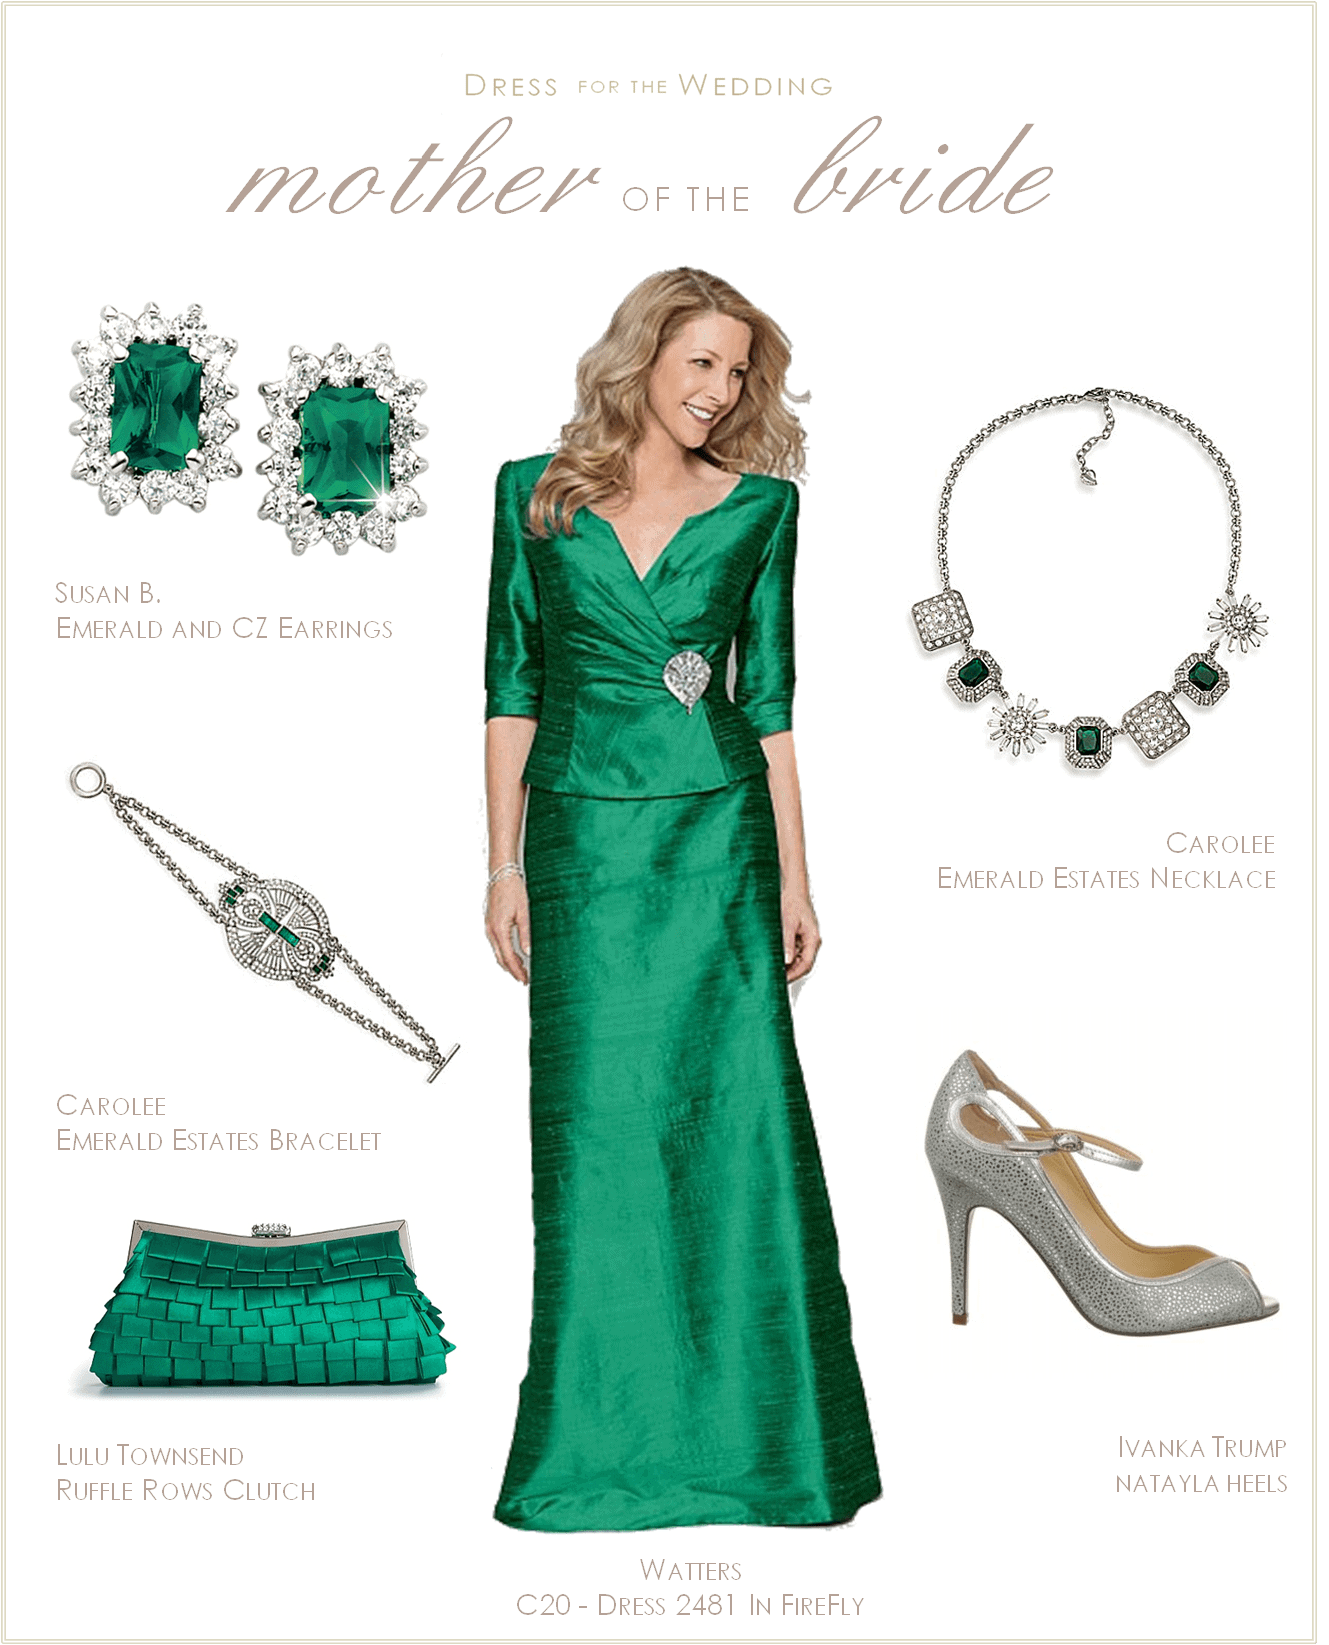 Mother of the Bride Dress: Emerald Green